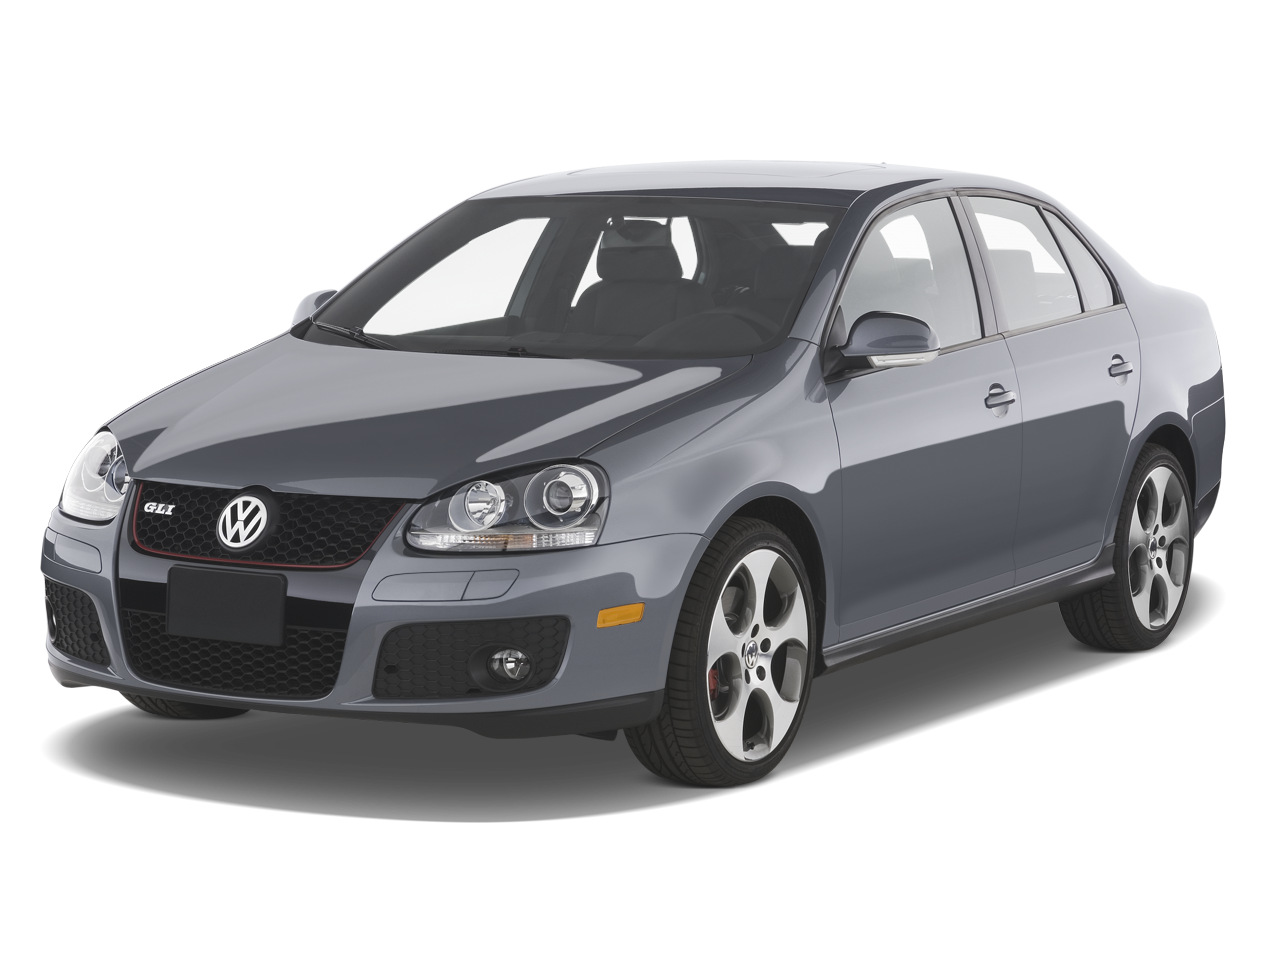 2008 volkswagen jetta 2 5 se volkswagen compact sedan. Black Bedroom Furniture Sets. Home Design Ideas